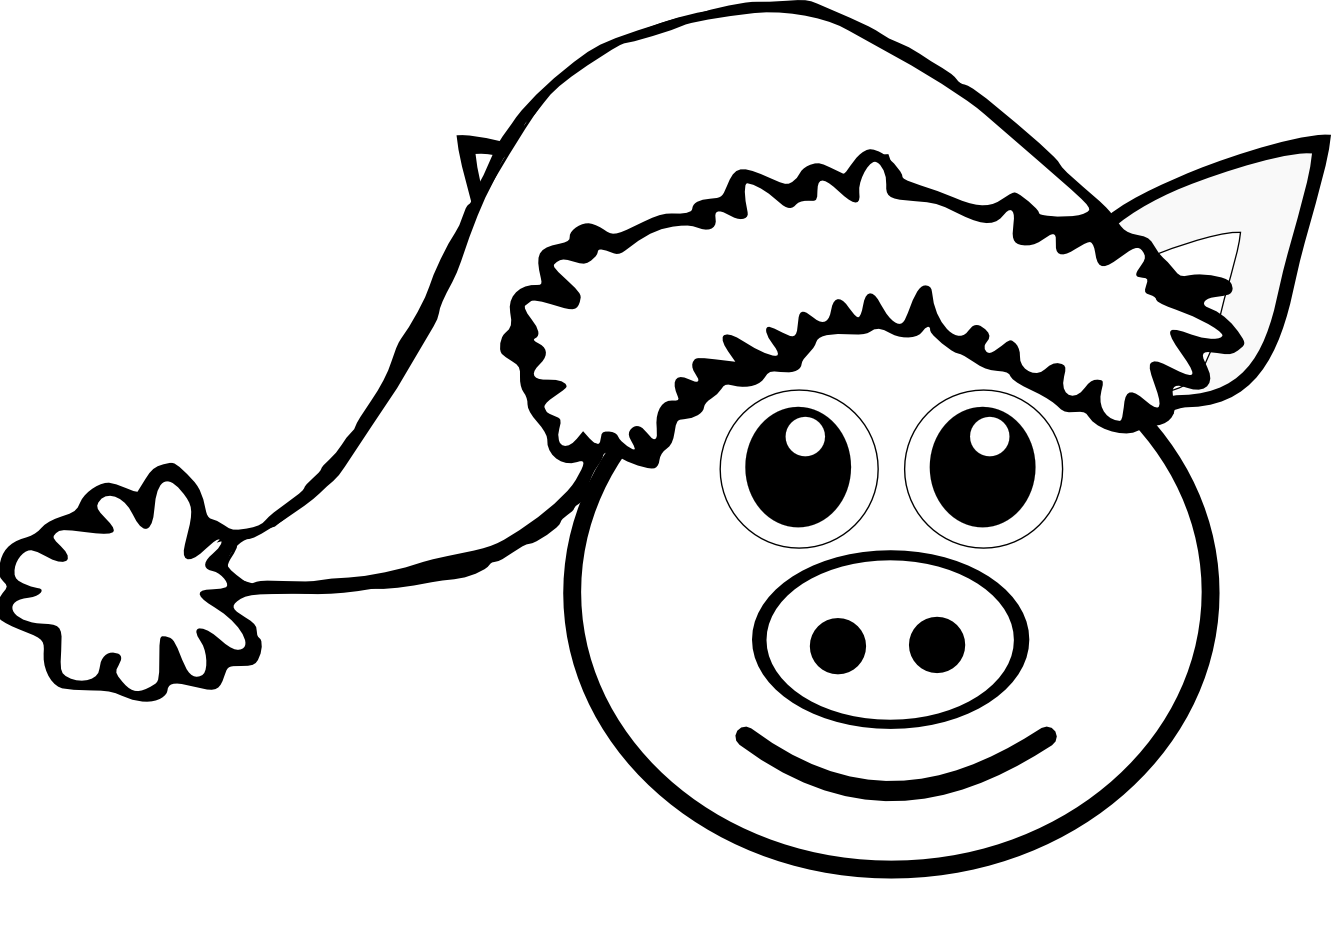 Pigs Drawing For Kids at GetDrawings.com | Free for personal use ...